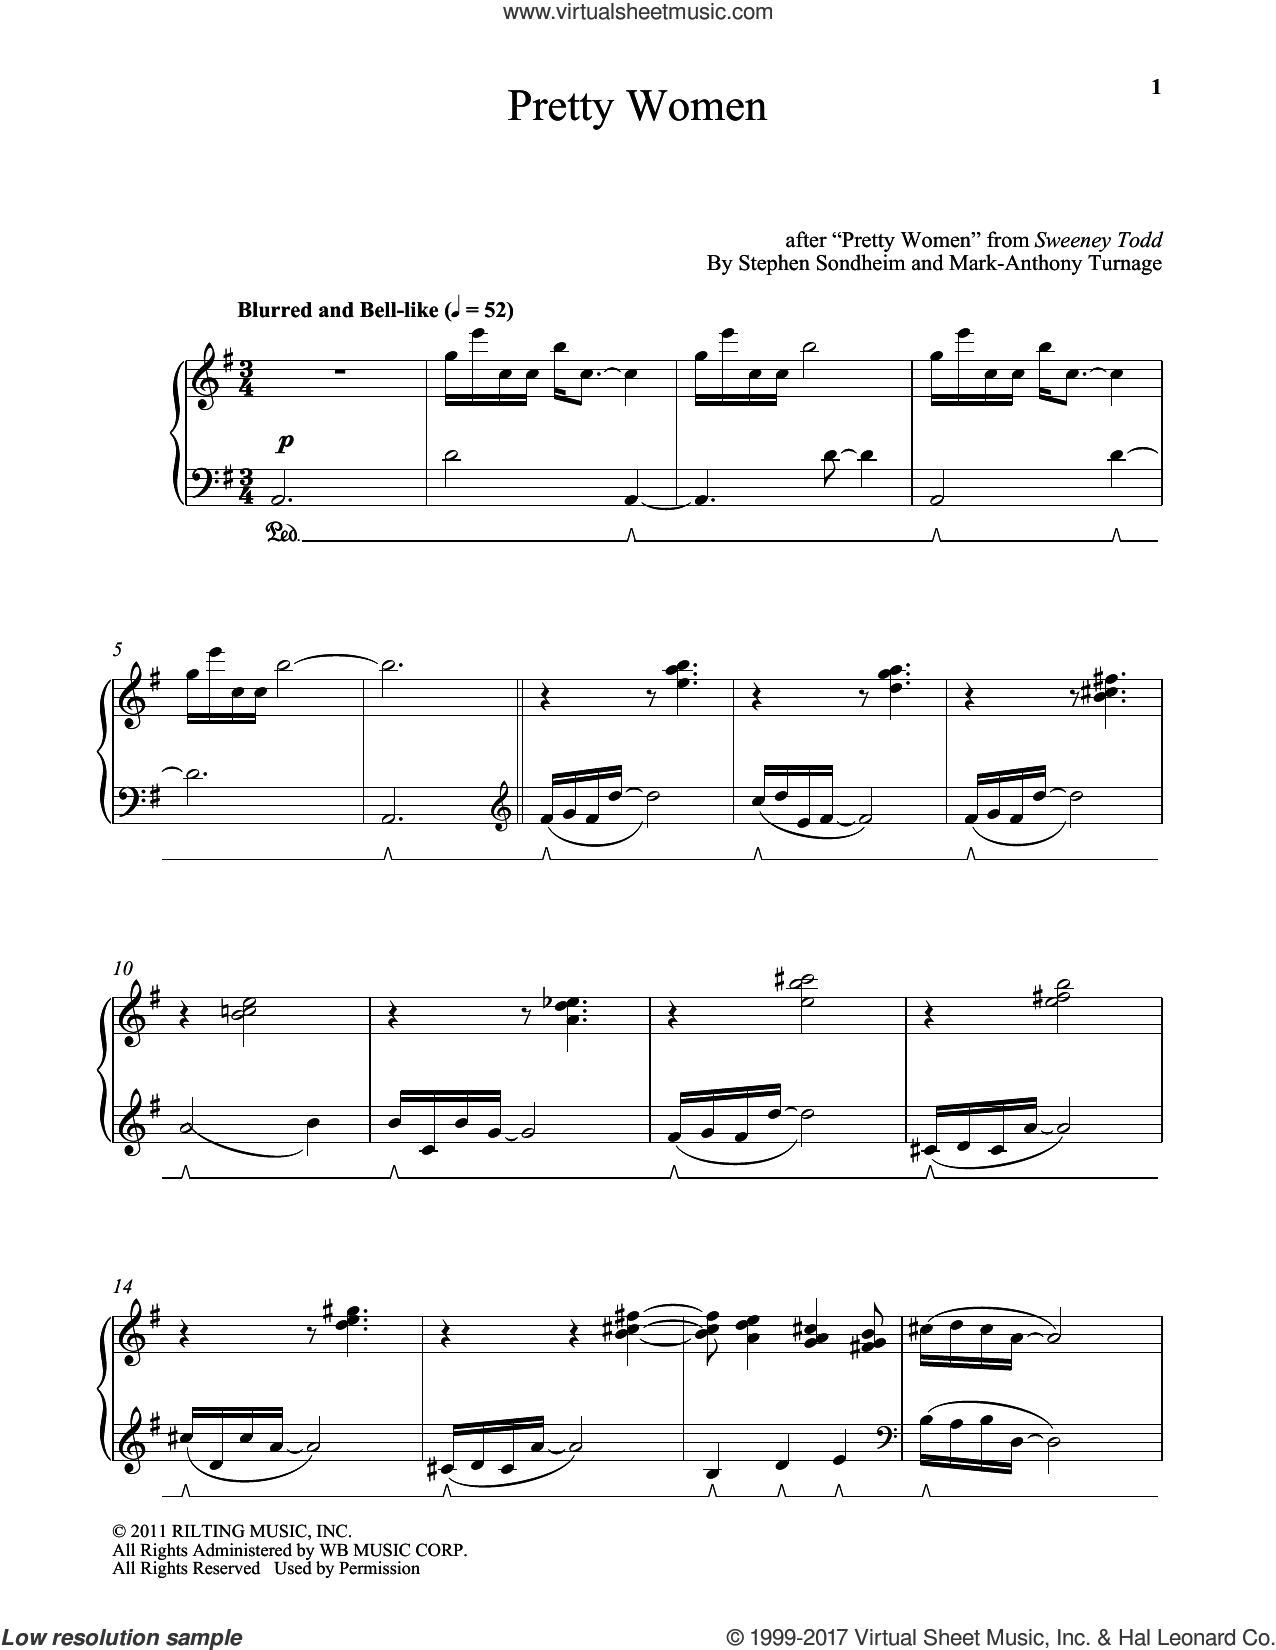 Pretty Women sheet music for piano solo by Stephen Sondheim and Mark-Anthony Turnage, intermediate skill level